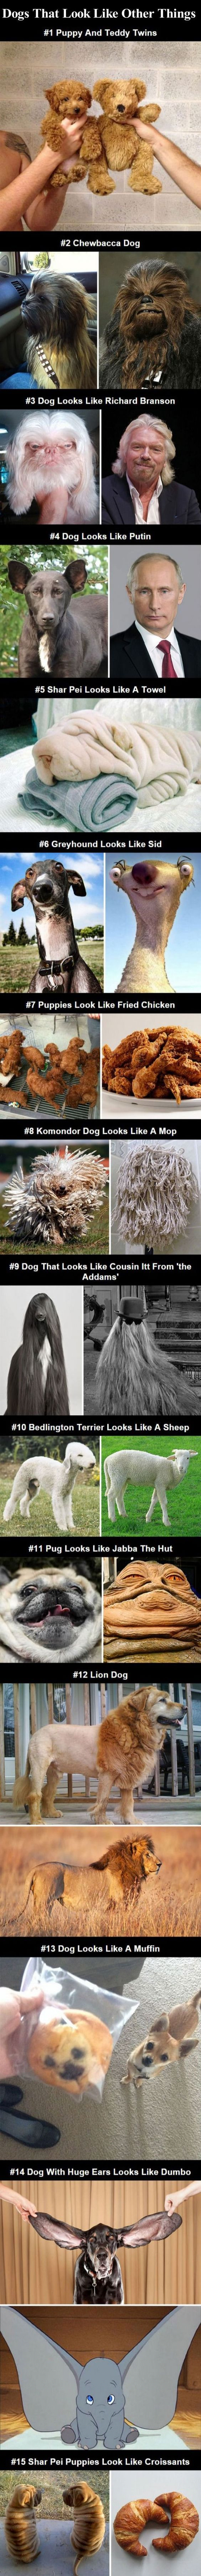 Dogs That Look Like Other Things cute animals dogs adorable dog puppy animal pets…